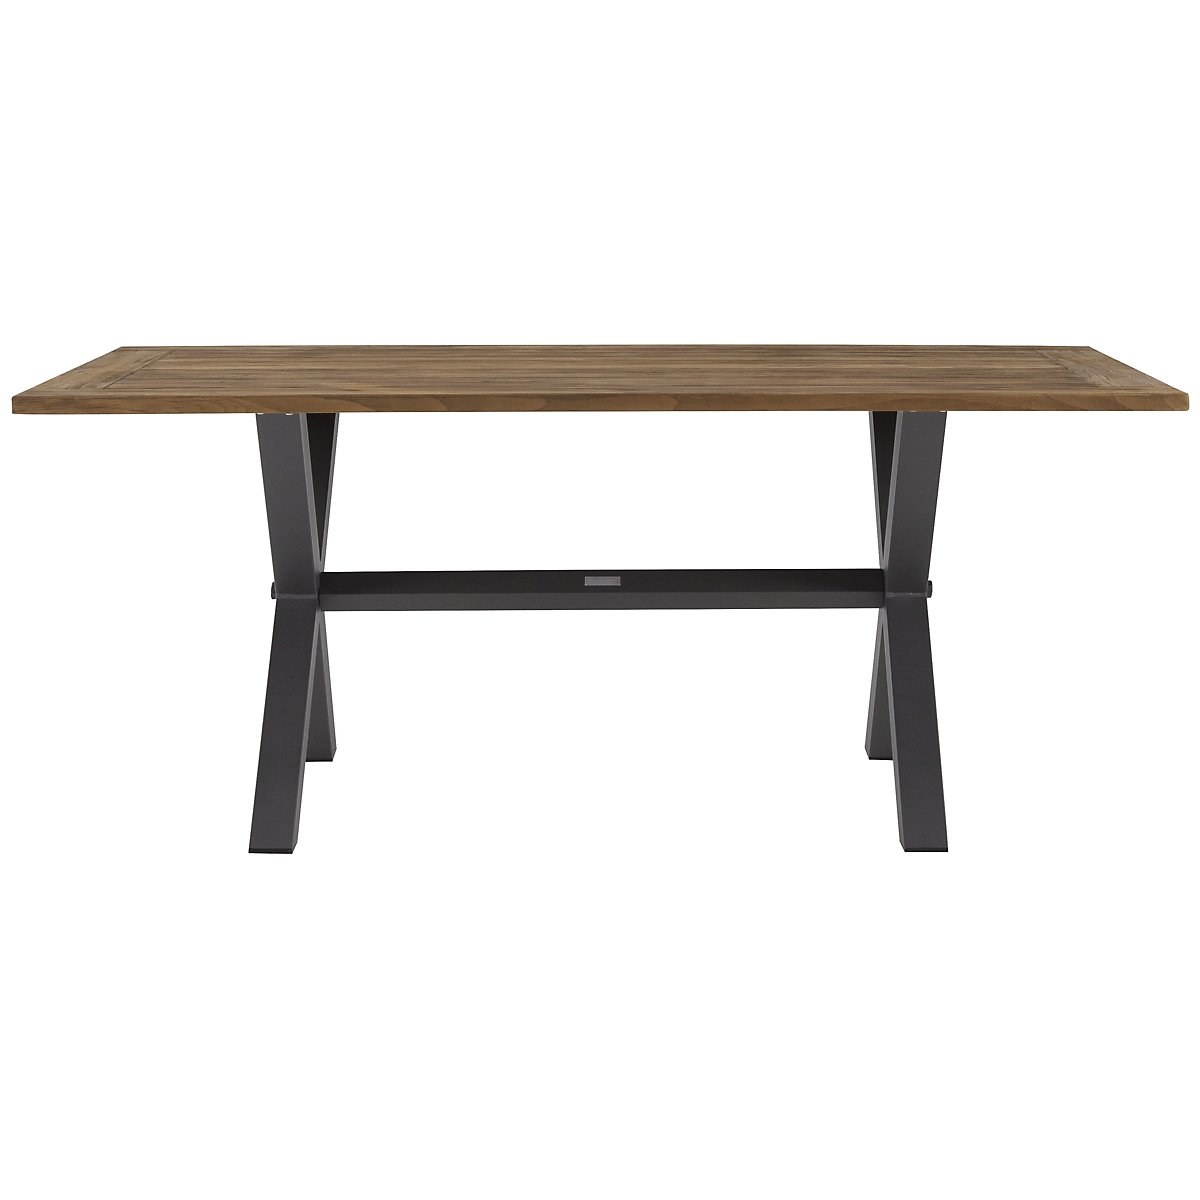 "Canyon Dark Tone 72"" Rectangular Table"